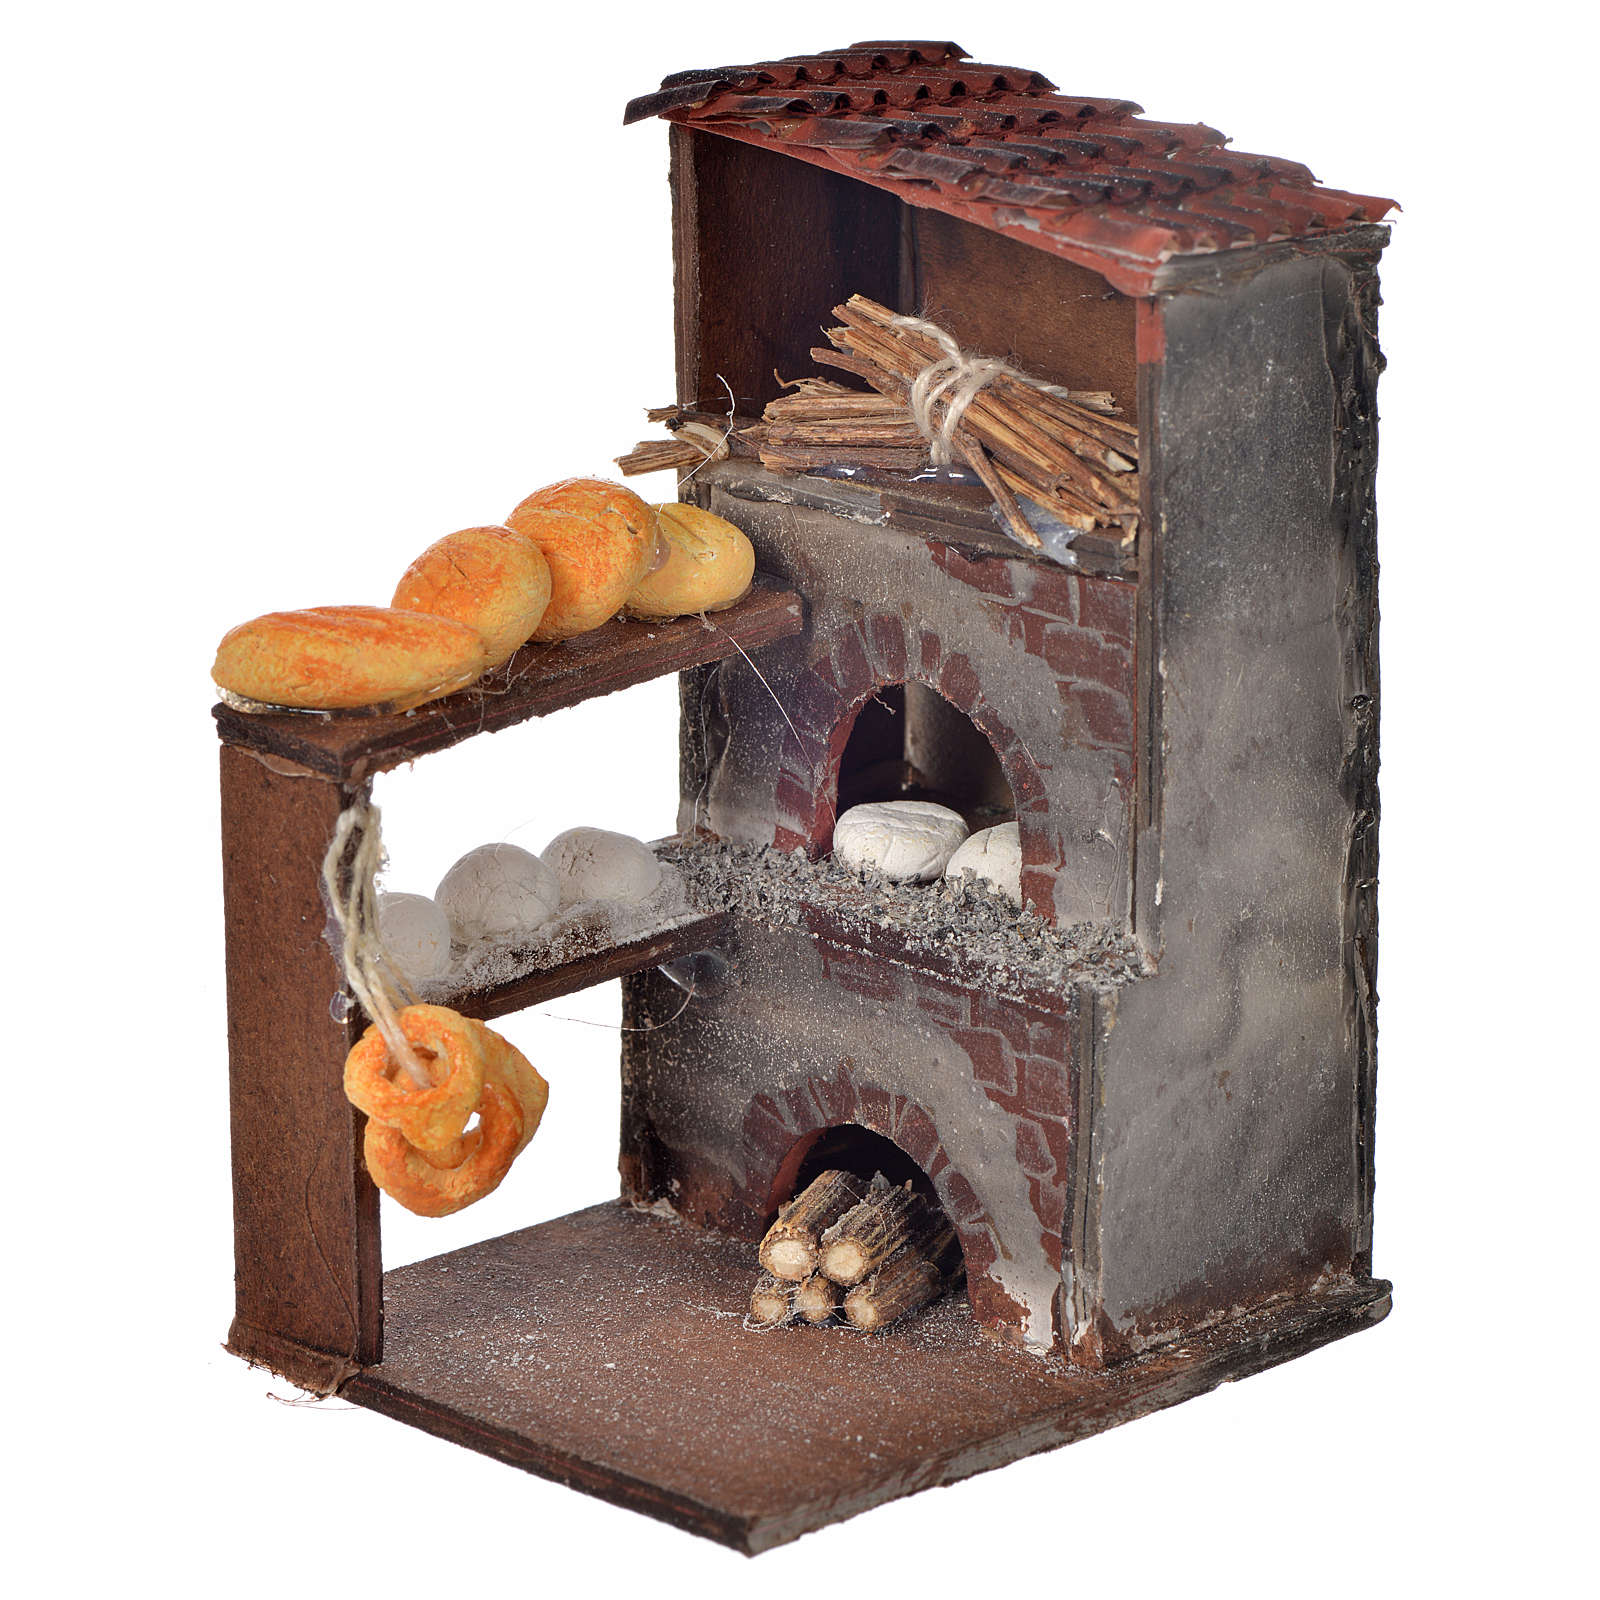 Neapolitan Nativity scene accessory, oven with bread 8,5x5x6cm 4